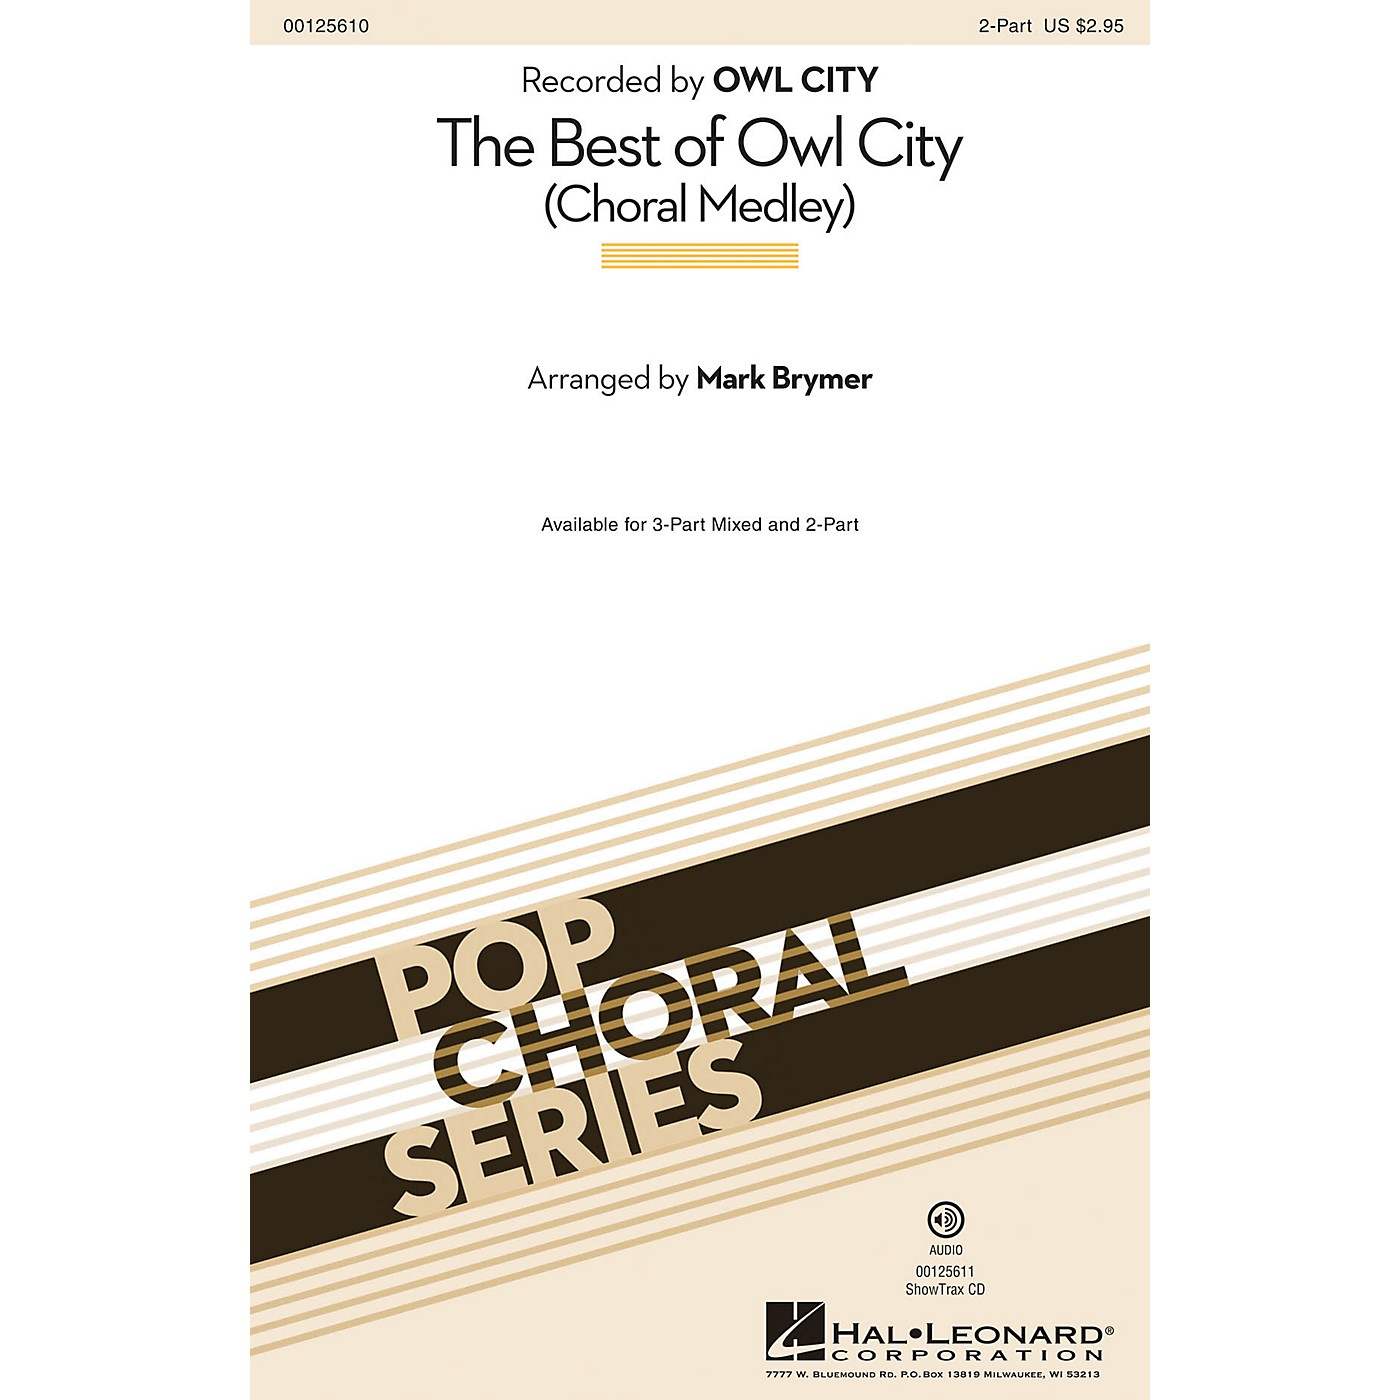 Hal Leonard The Best of Owl City (Choral Medley) 2-Part by Owl City arranged by Mark Brymer thumbnail